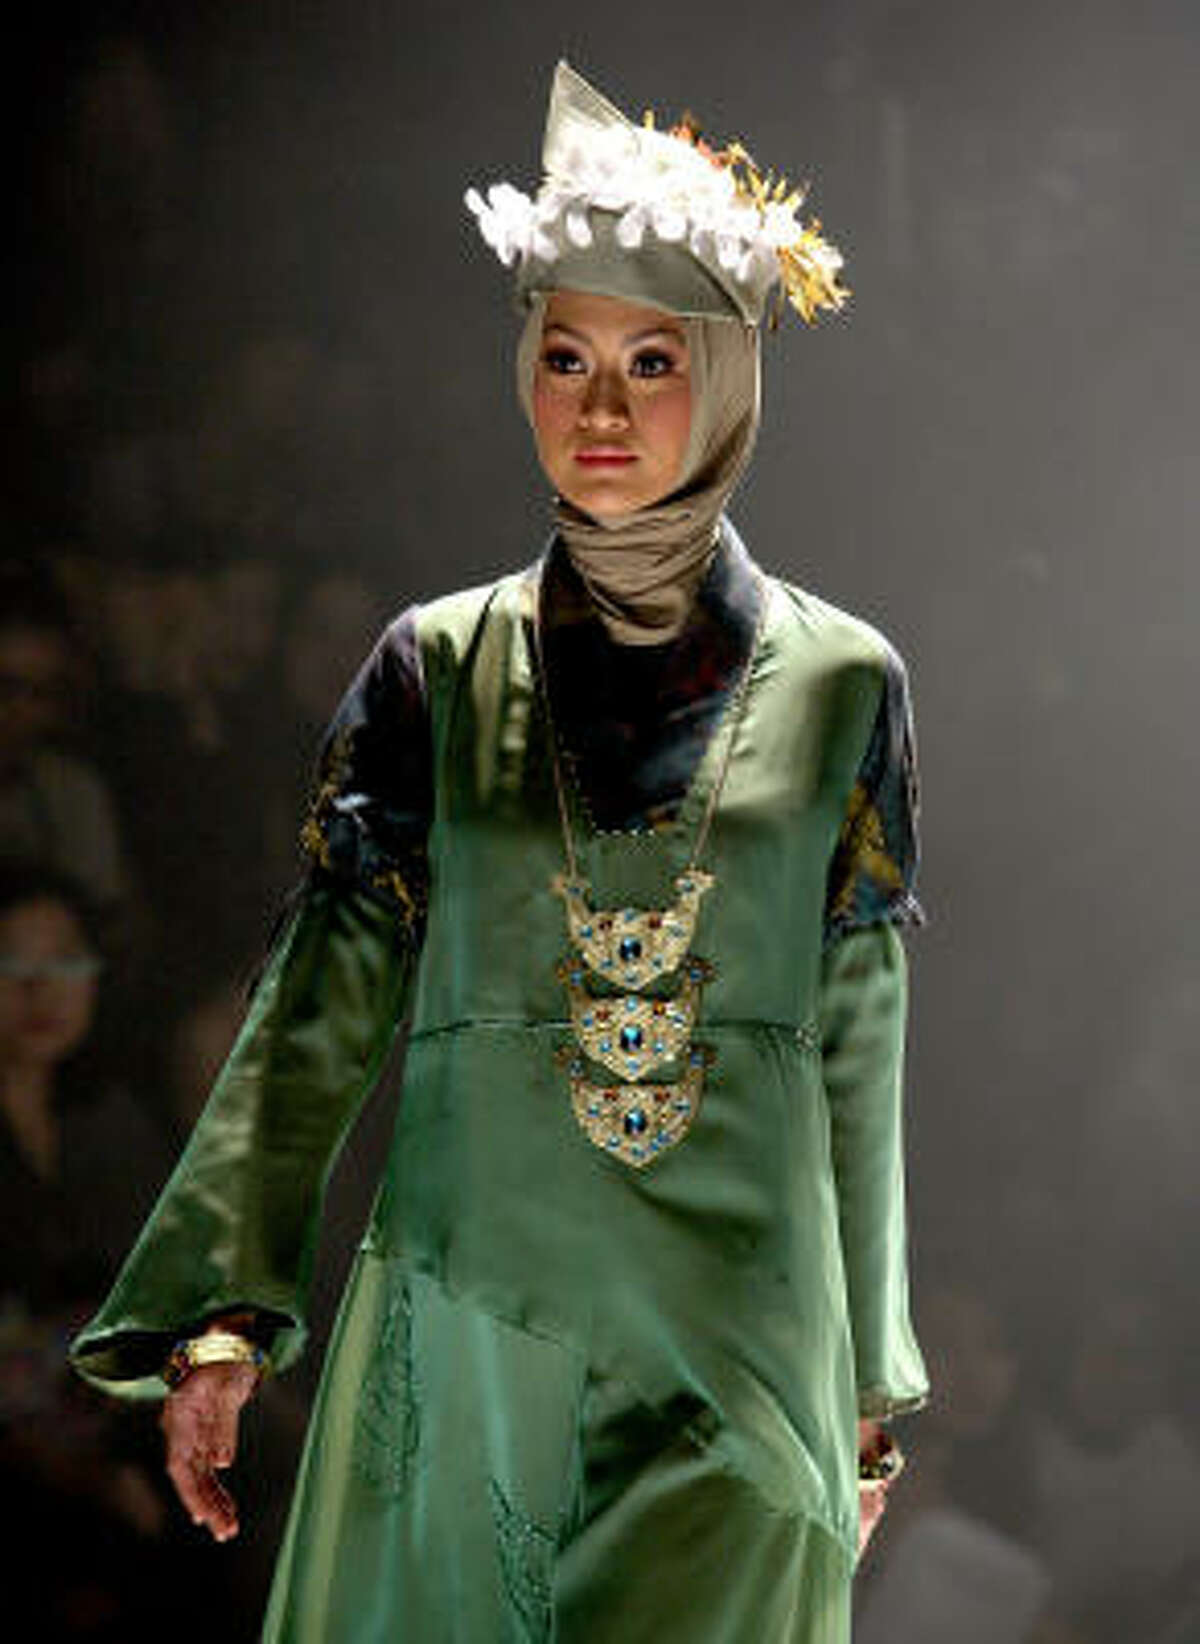 A model showcases designs on the runway by Nieta Hidayani as part of Jakarta Fashion Week 2009 in Jakarta, Indonesia.